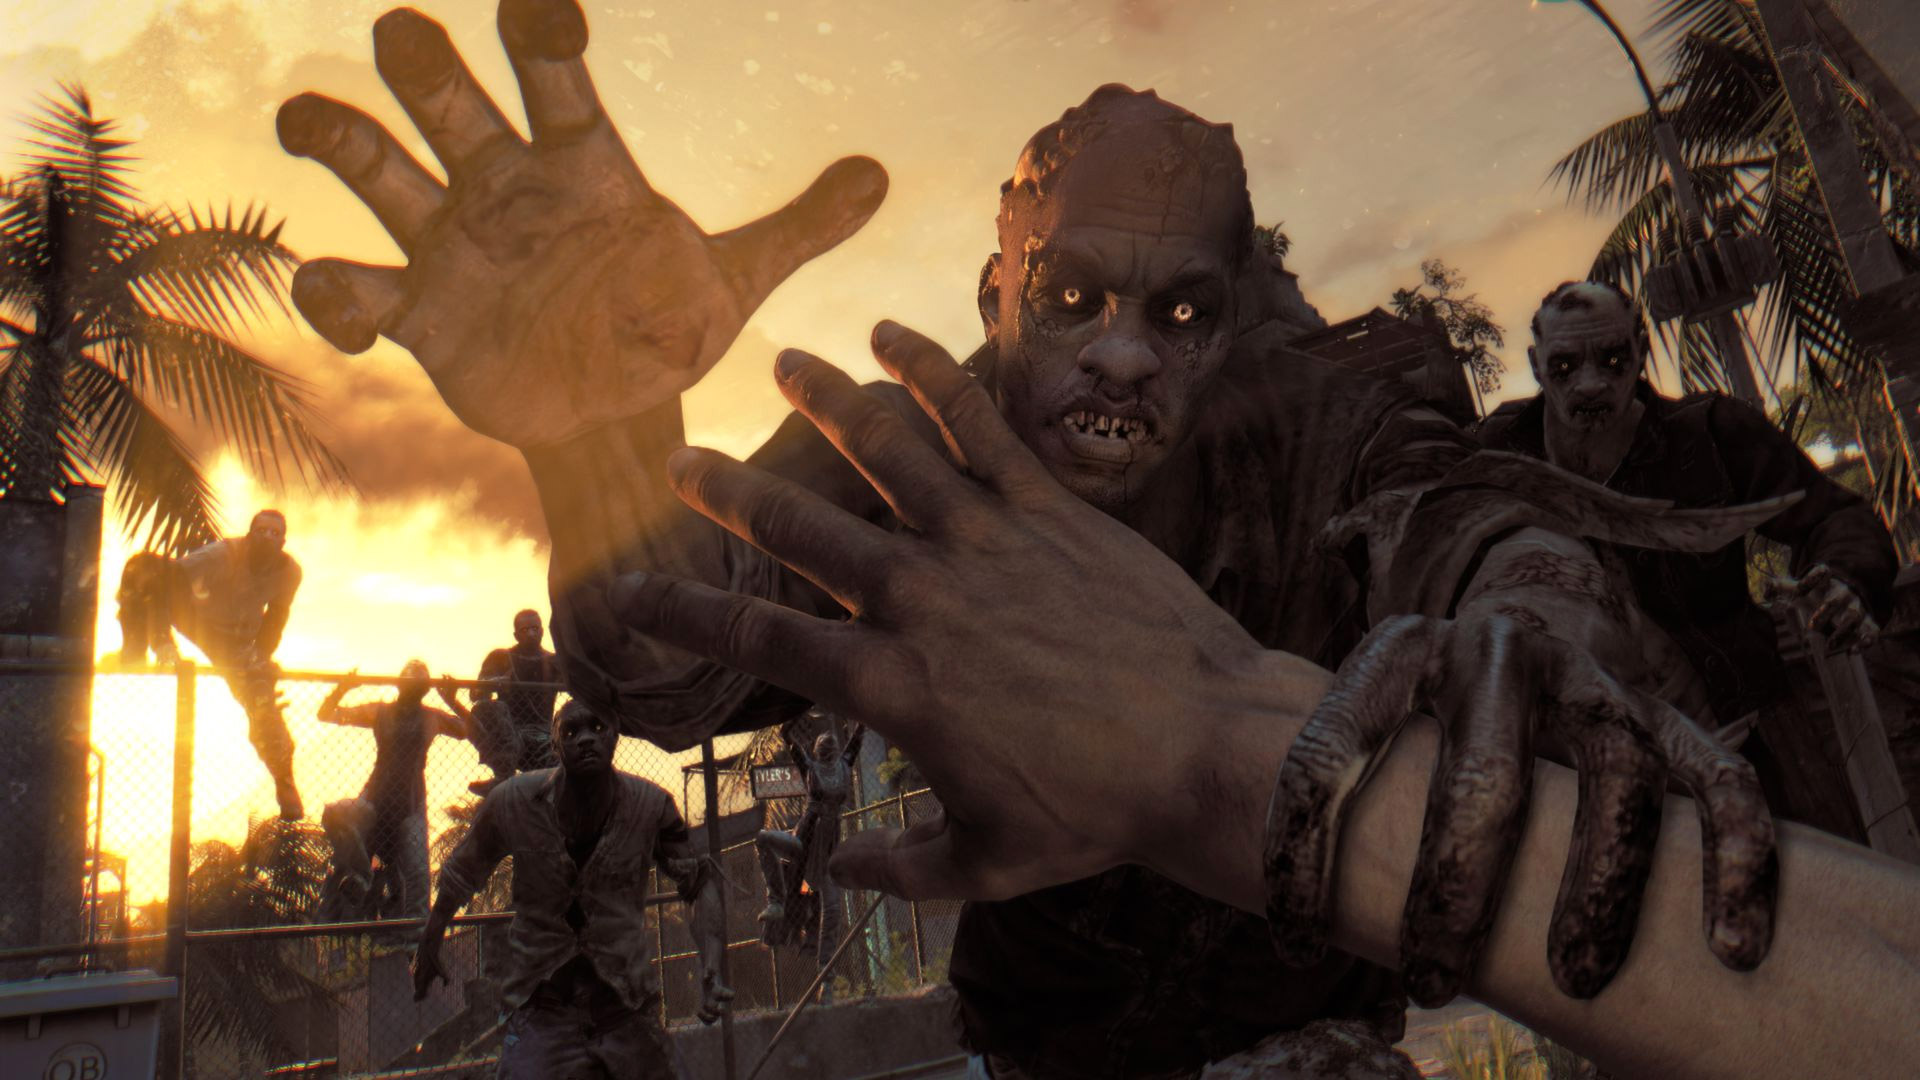 Dying Light devs take a shot at Destiny's Red Bull promotion